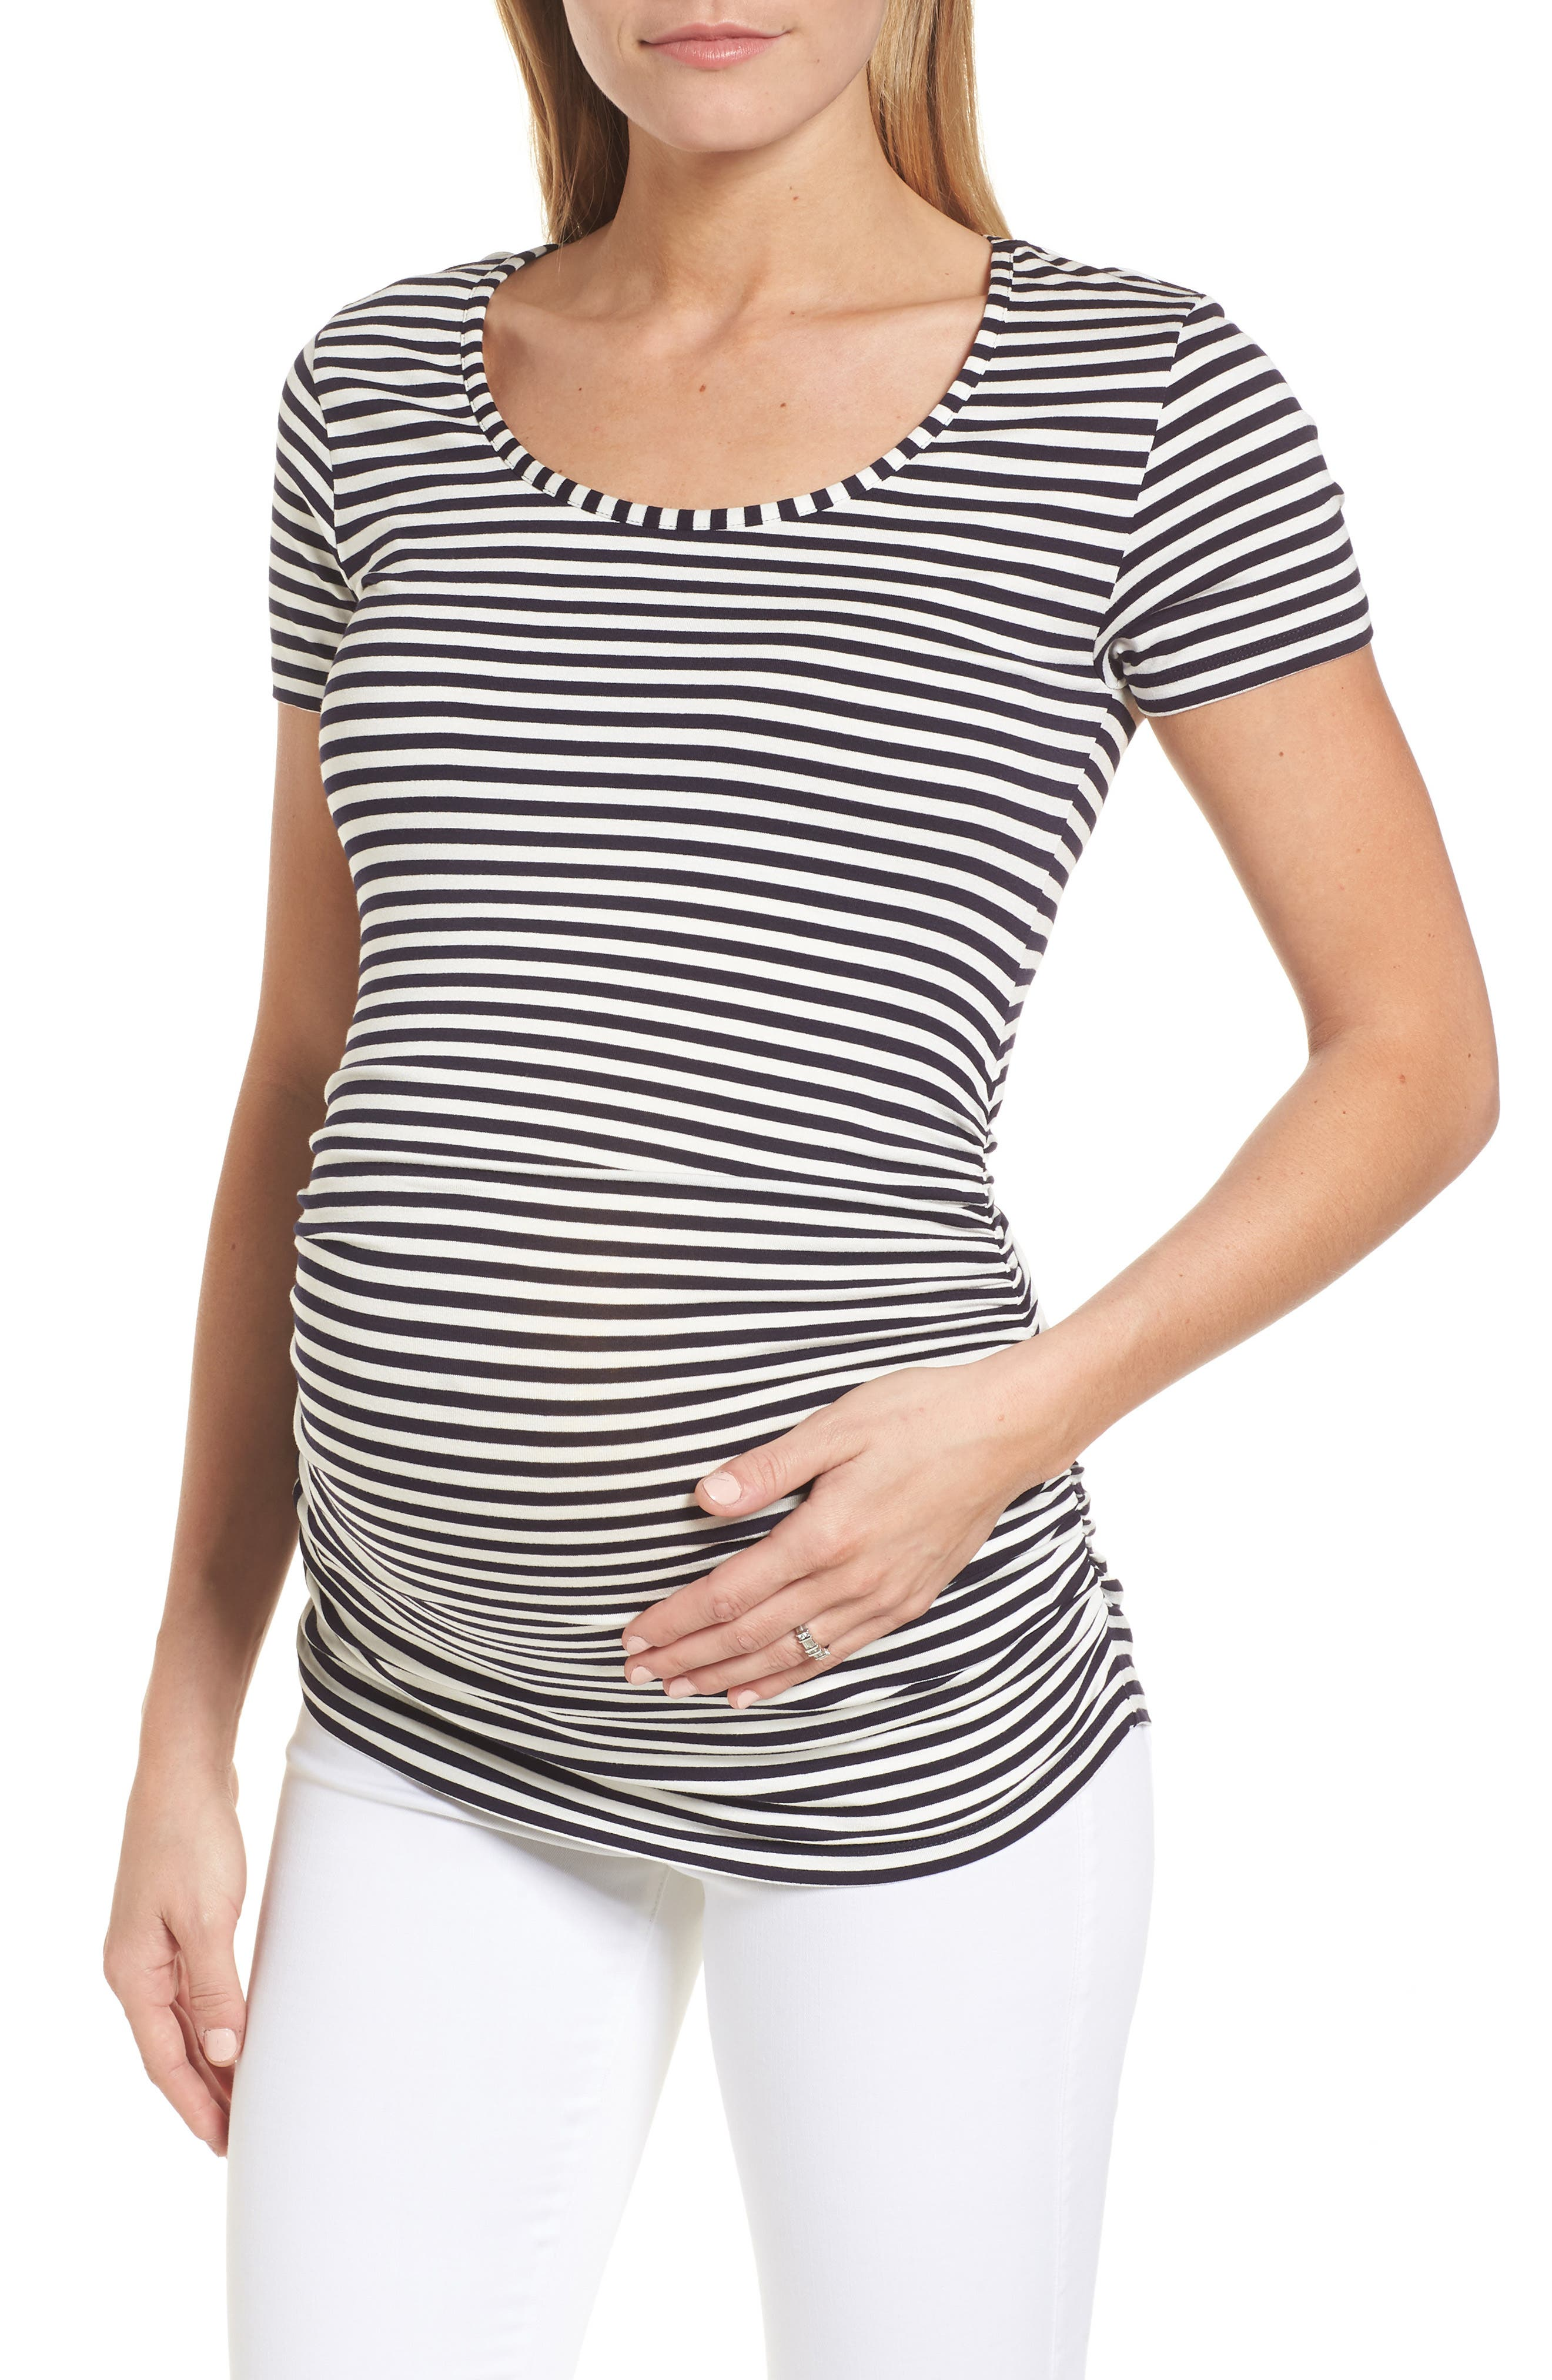 Jenna Maternity Top,                         Main,                         color, Navy/Off White